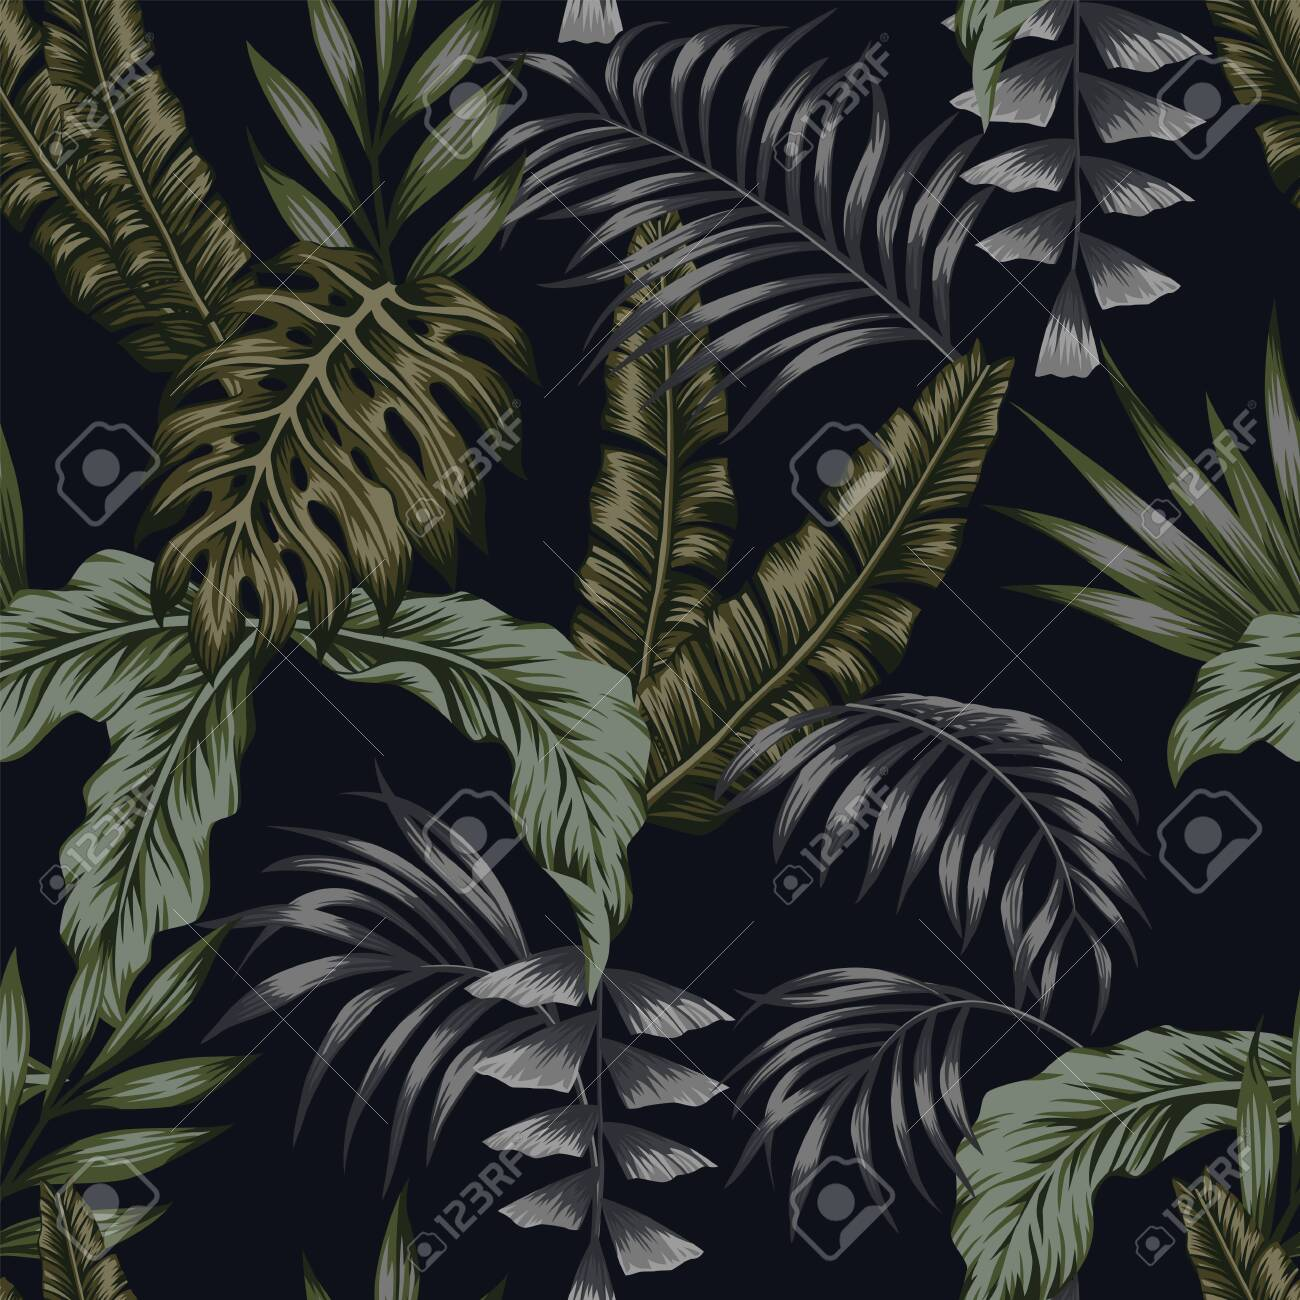 Exotic Tropical Green Palm Leaves Dark Night Jungle Background